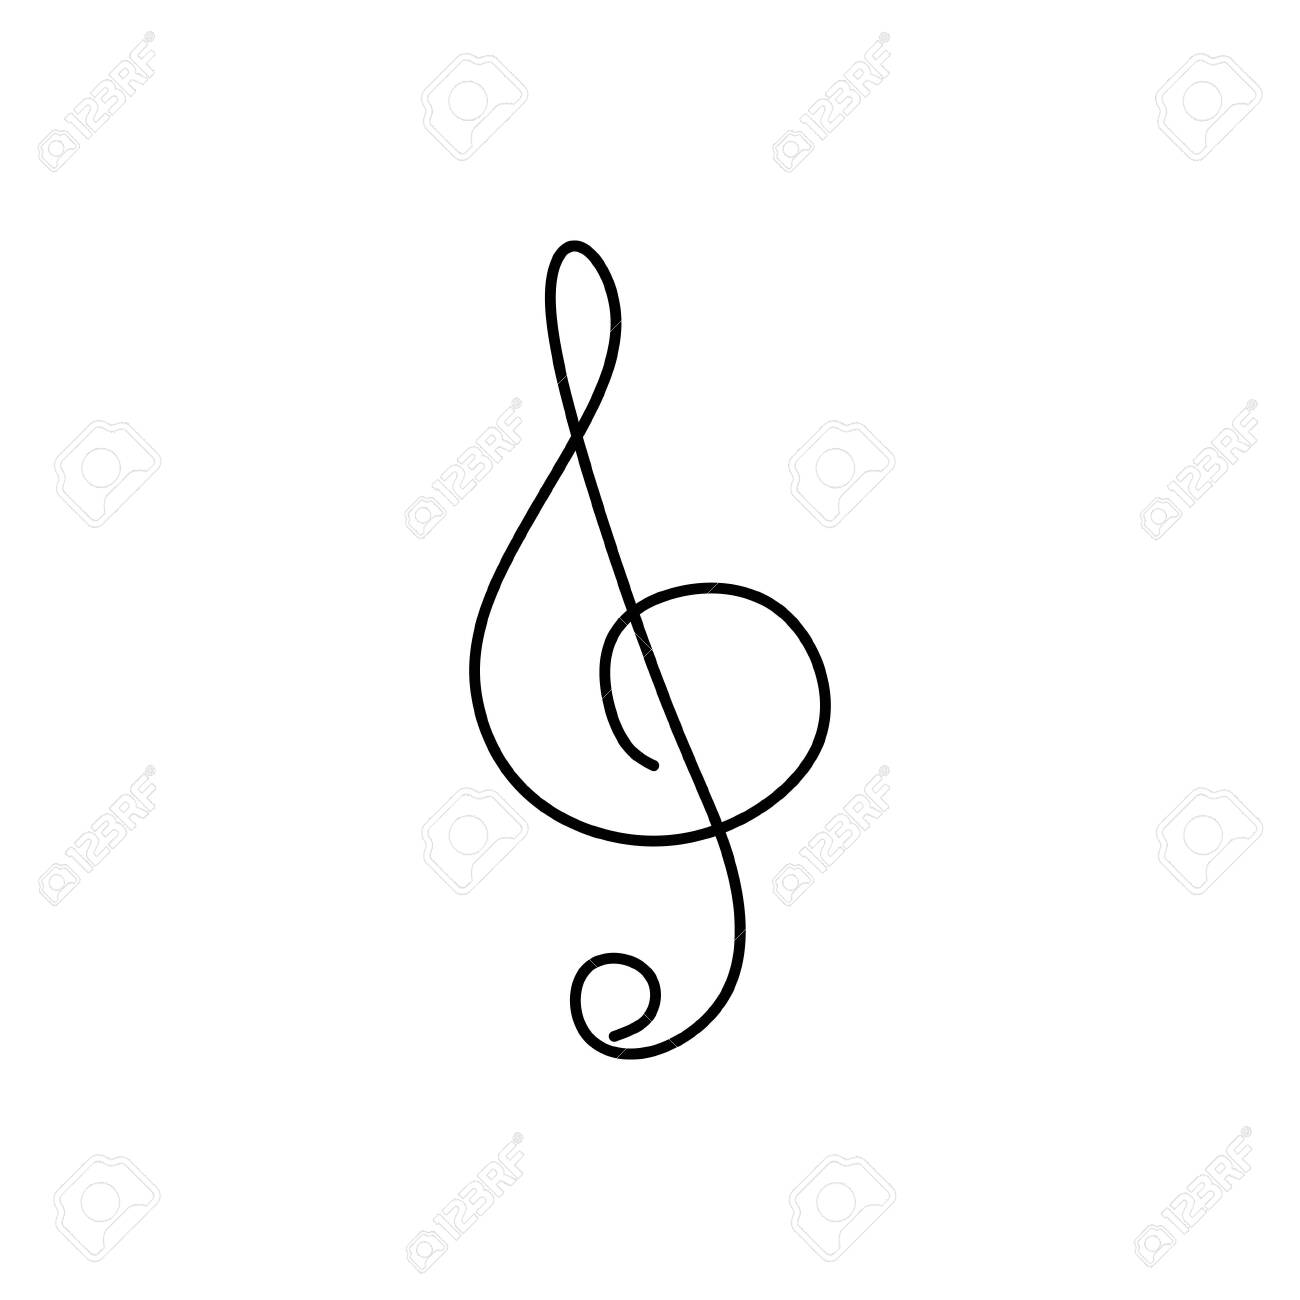 Continuous Line Drawing Of Music Note Symbol Royalty Free Cliparts Vectors And Stock Illustration Image 137587733